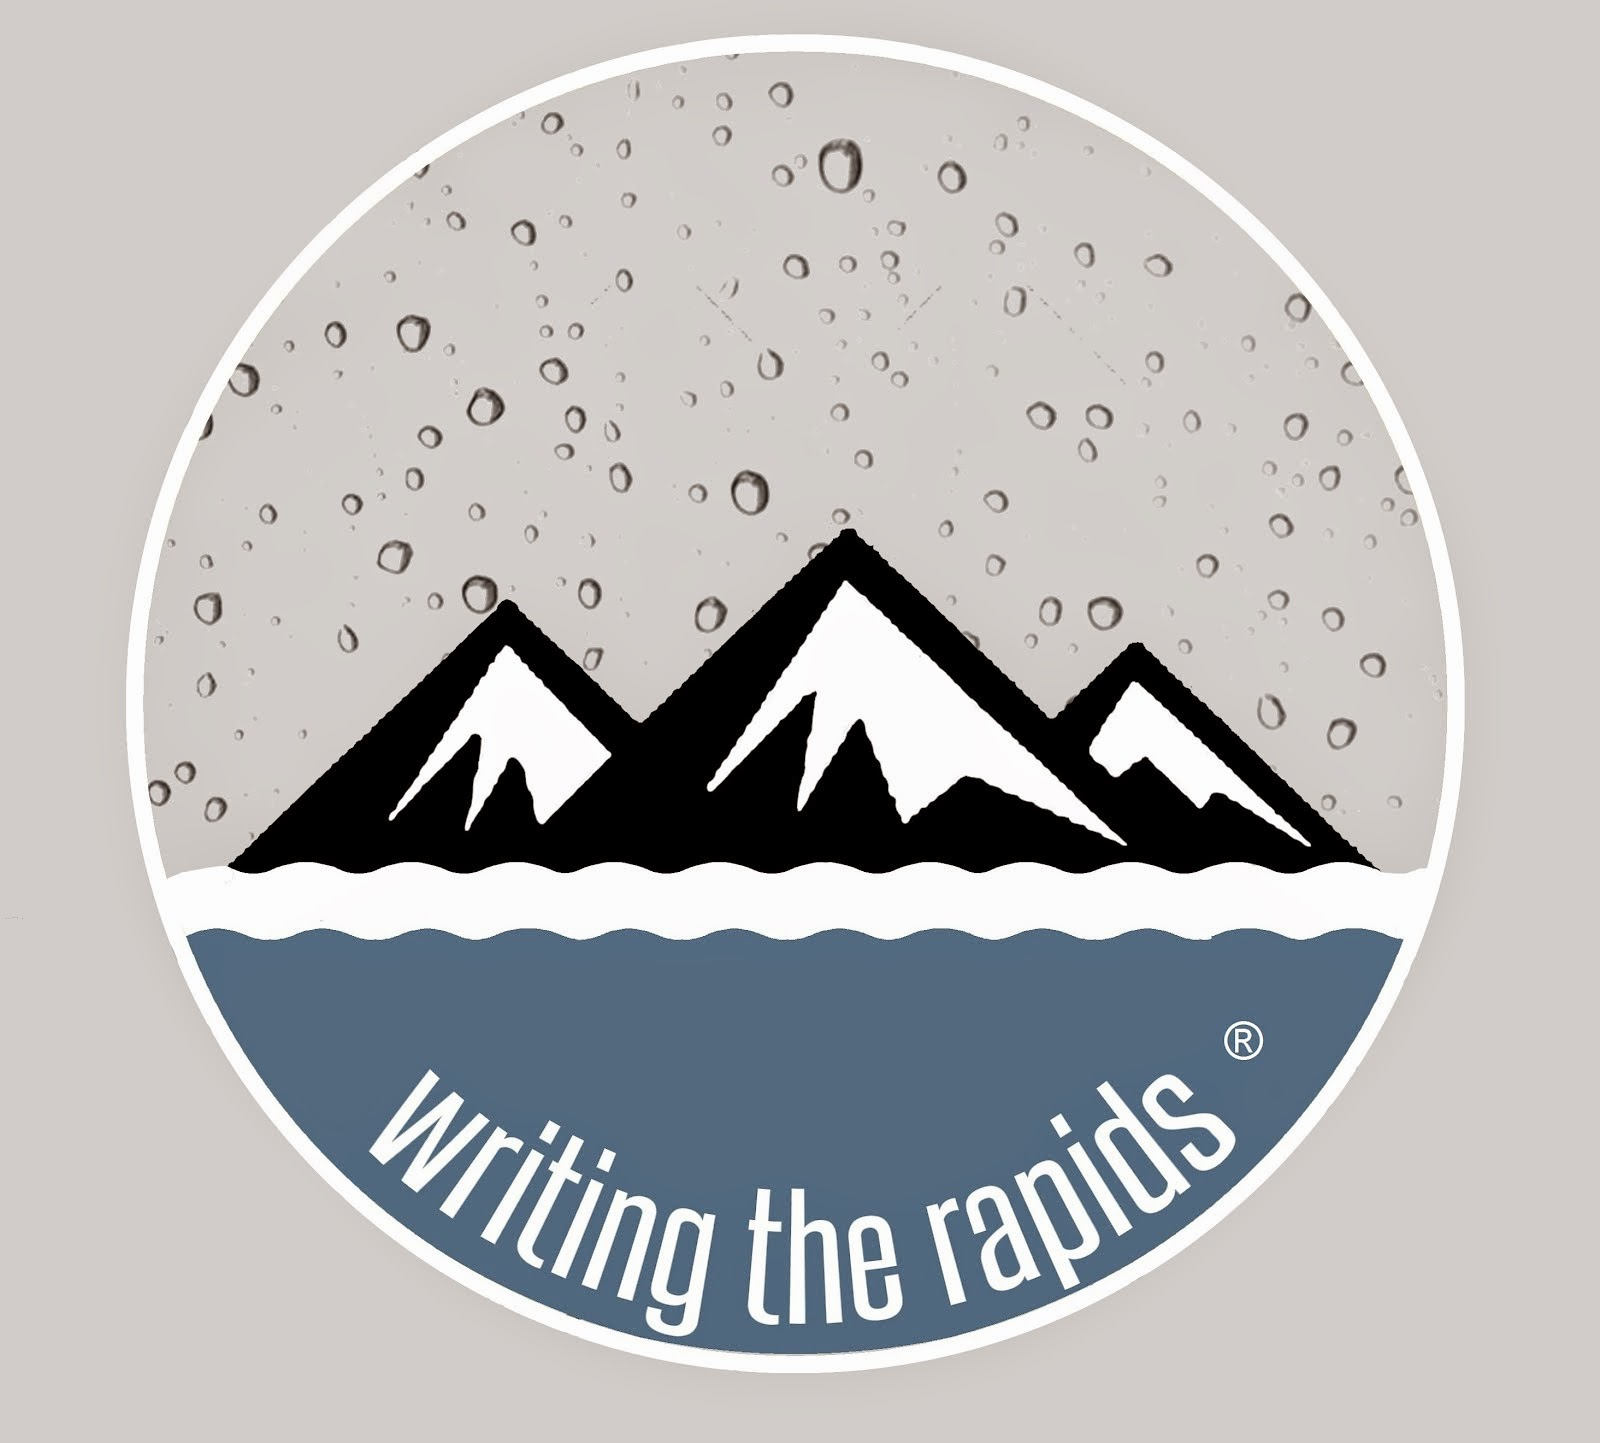 Writing the Rapids ®